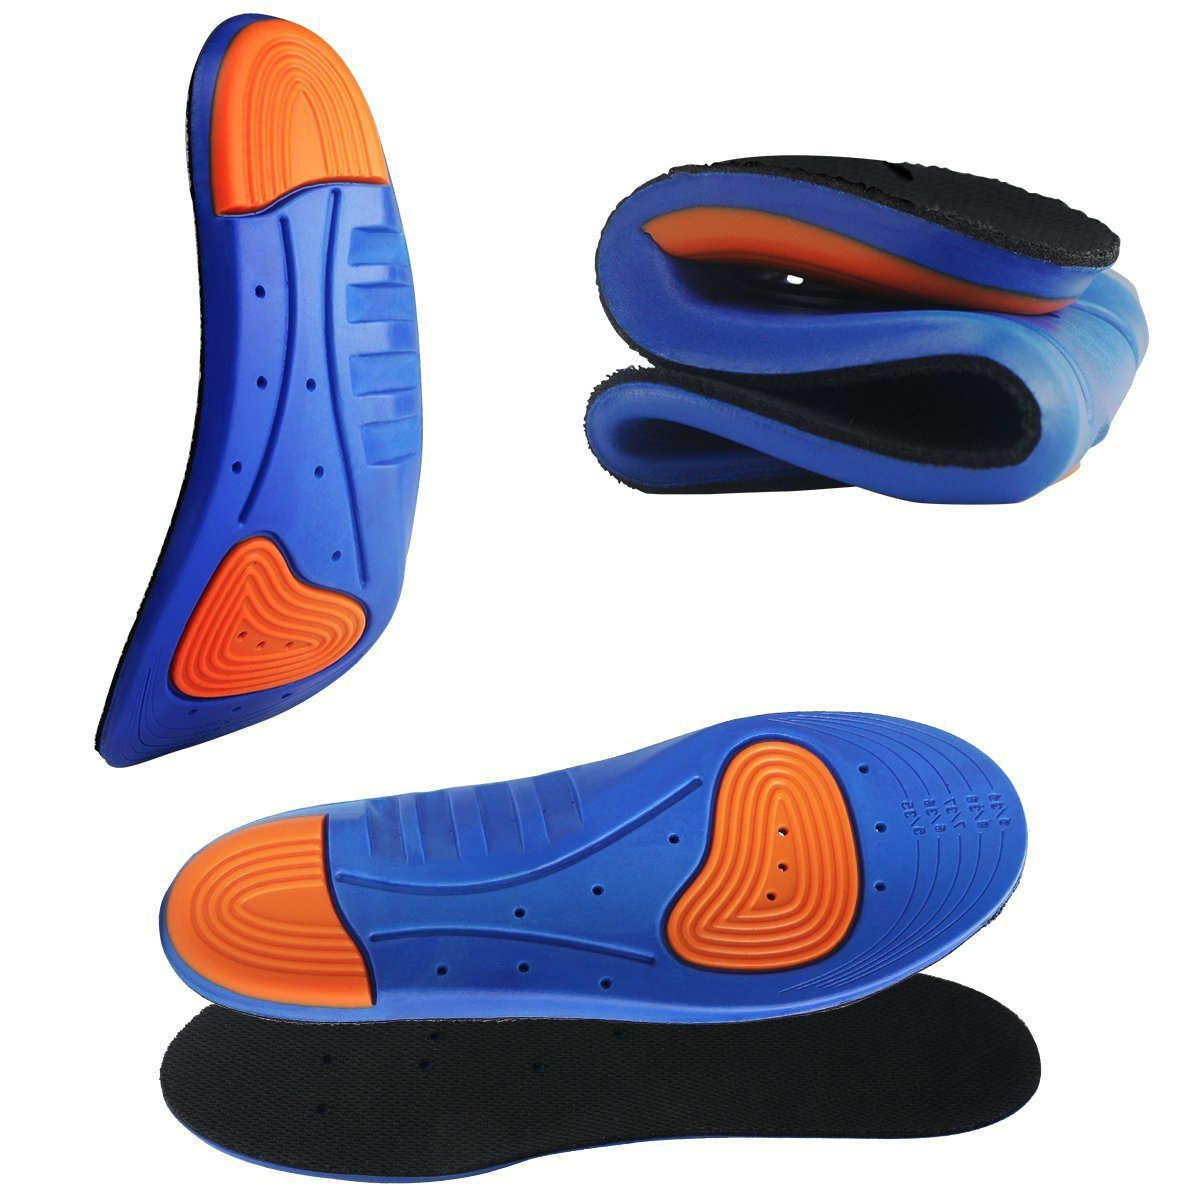 Sports Elastic Memory Silicone Gel Insoles And Shoe Inserts For Women And Men Breathable Shoes Pad